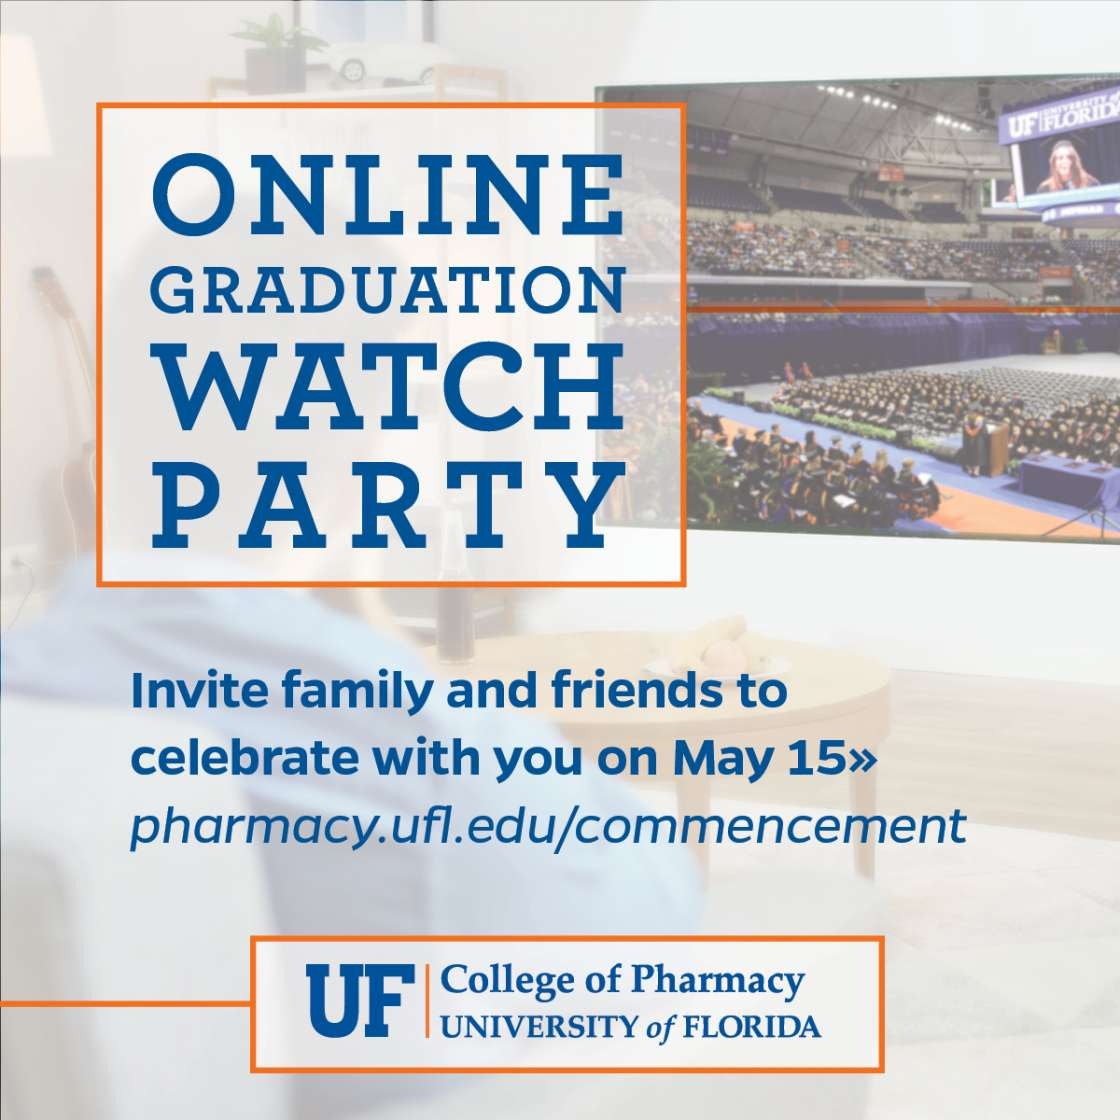 Graduation Watch Party